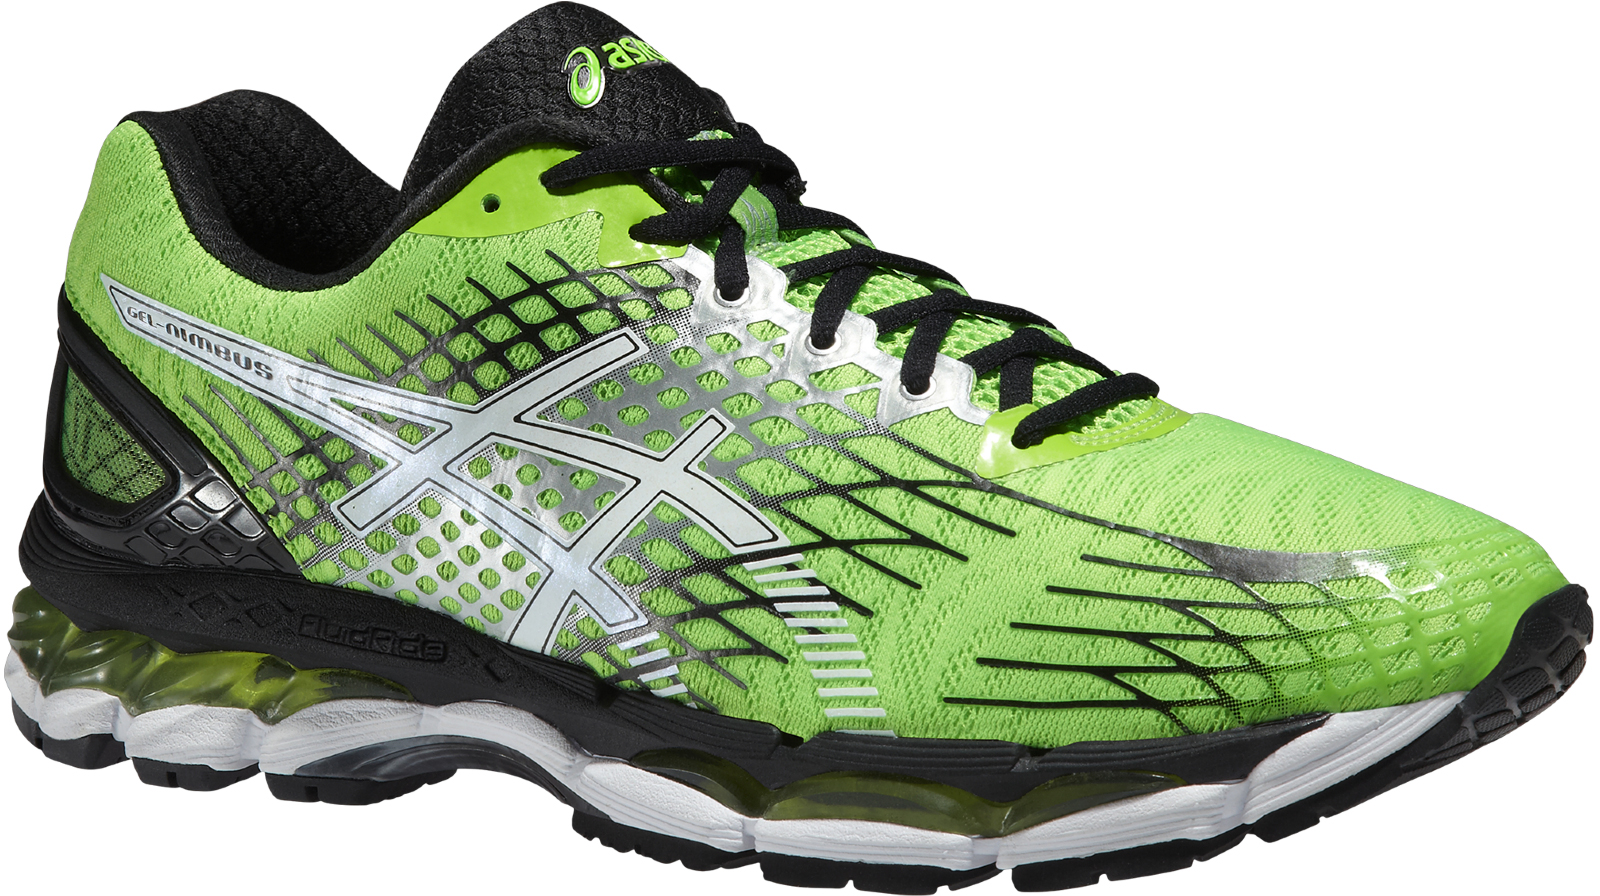 Chaussures Nimbus RunningAsics De Shoesss16Wiggle 17 Gel uK5lF3cT1J